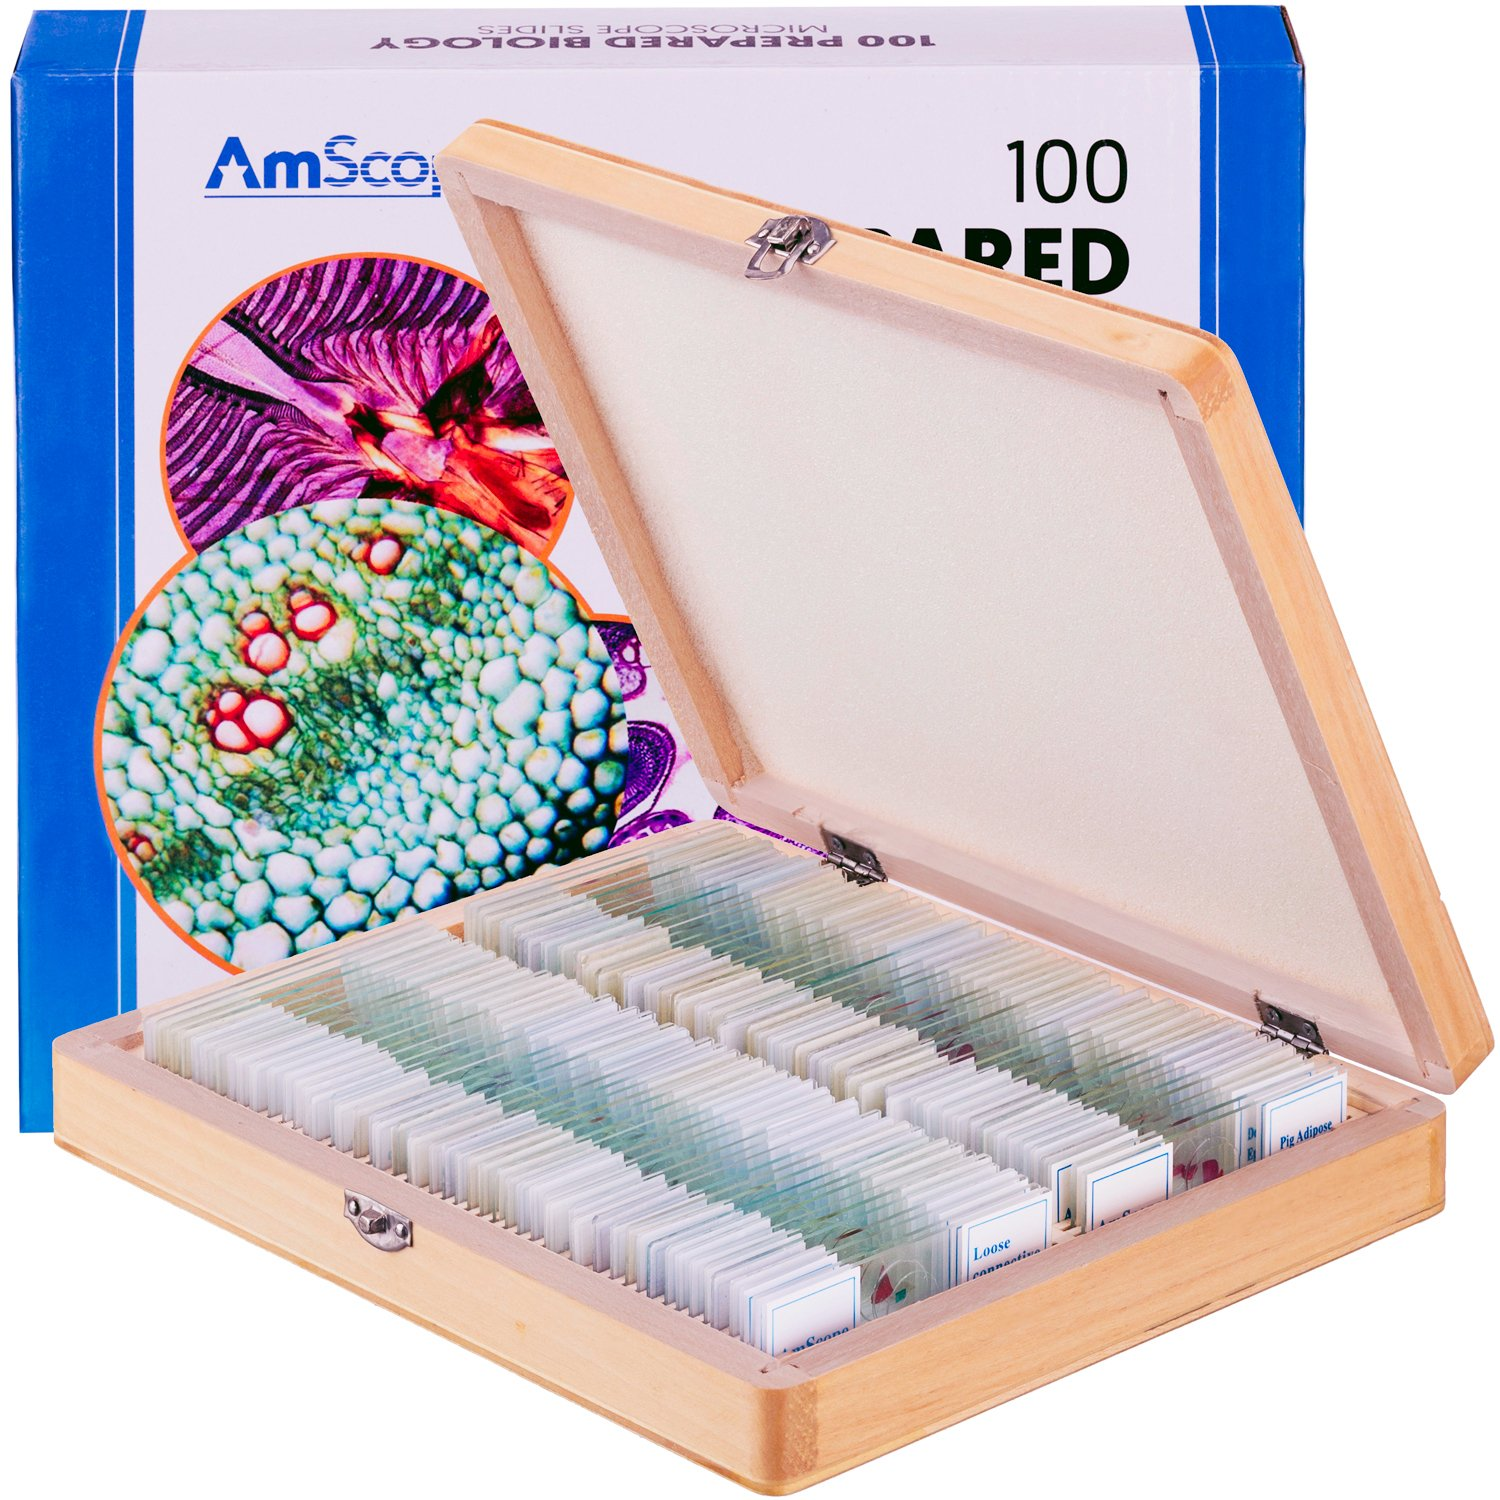 AmScope PS100A Prepared Microscope Slide Set for Basic Biological Science Education, 100 Slides, Set A, Includes Fitted Wooden Case by AmScope